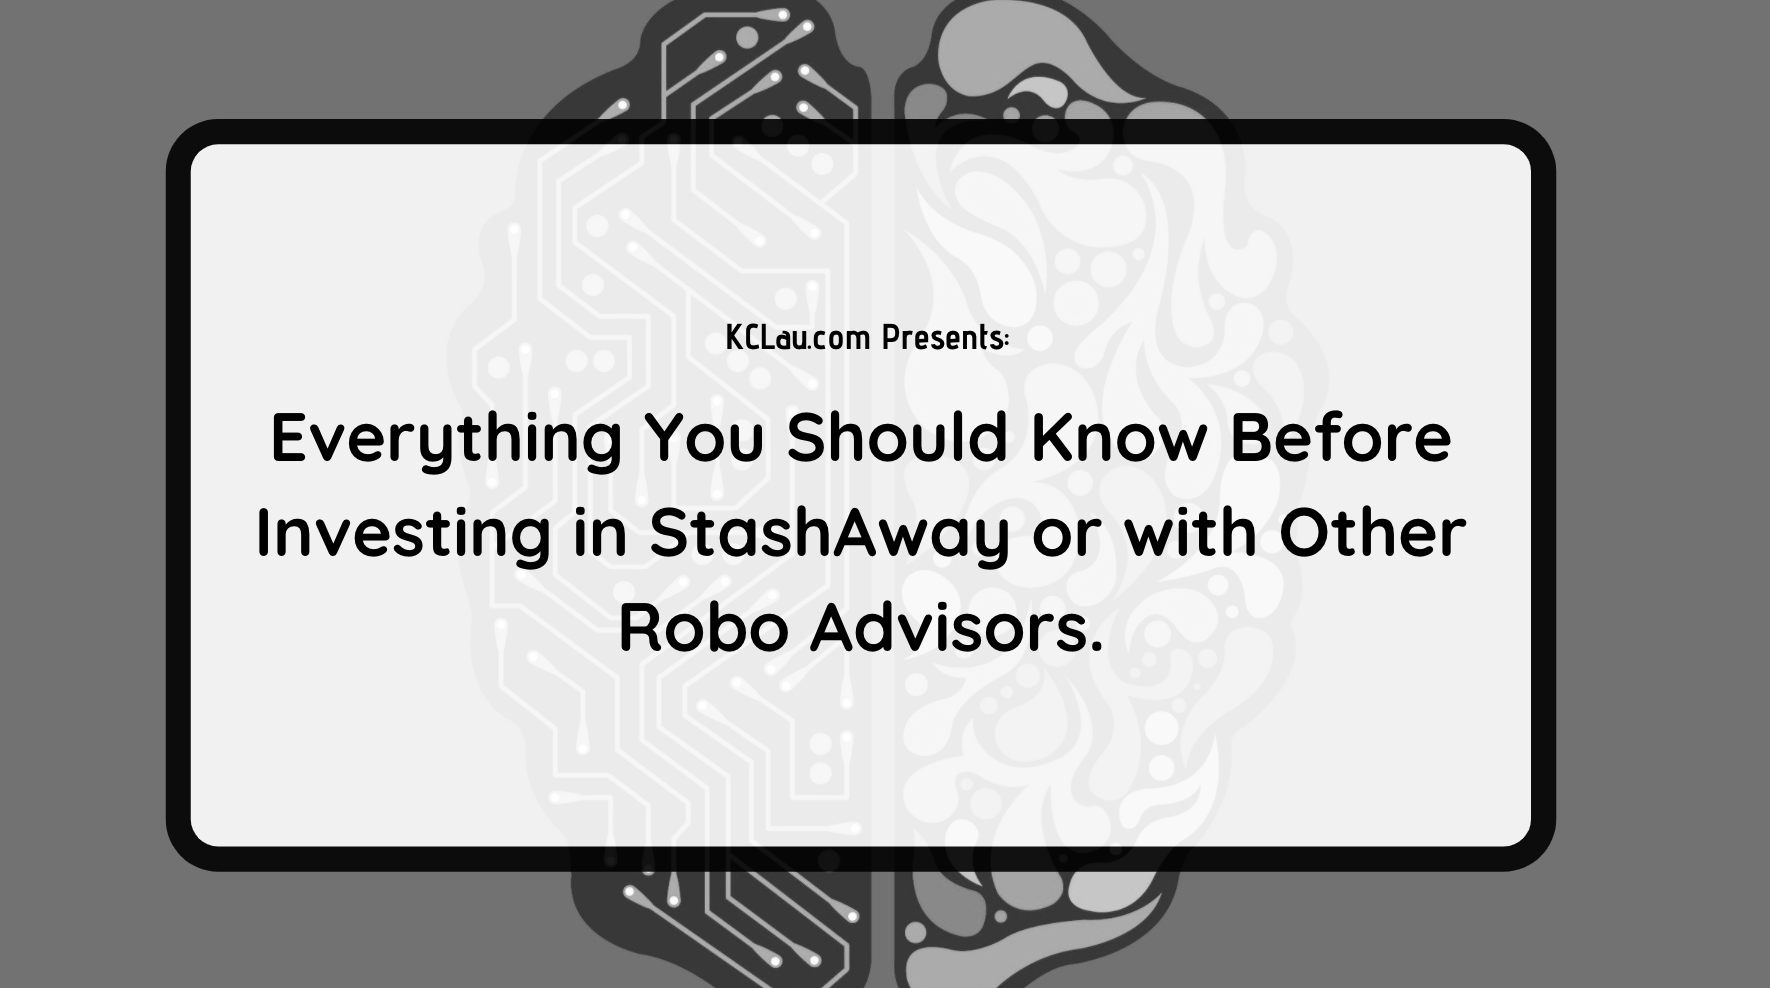 Everything You Should Know Before Investing in StashAway or with Other Robo Advisors.